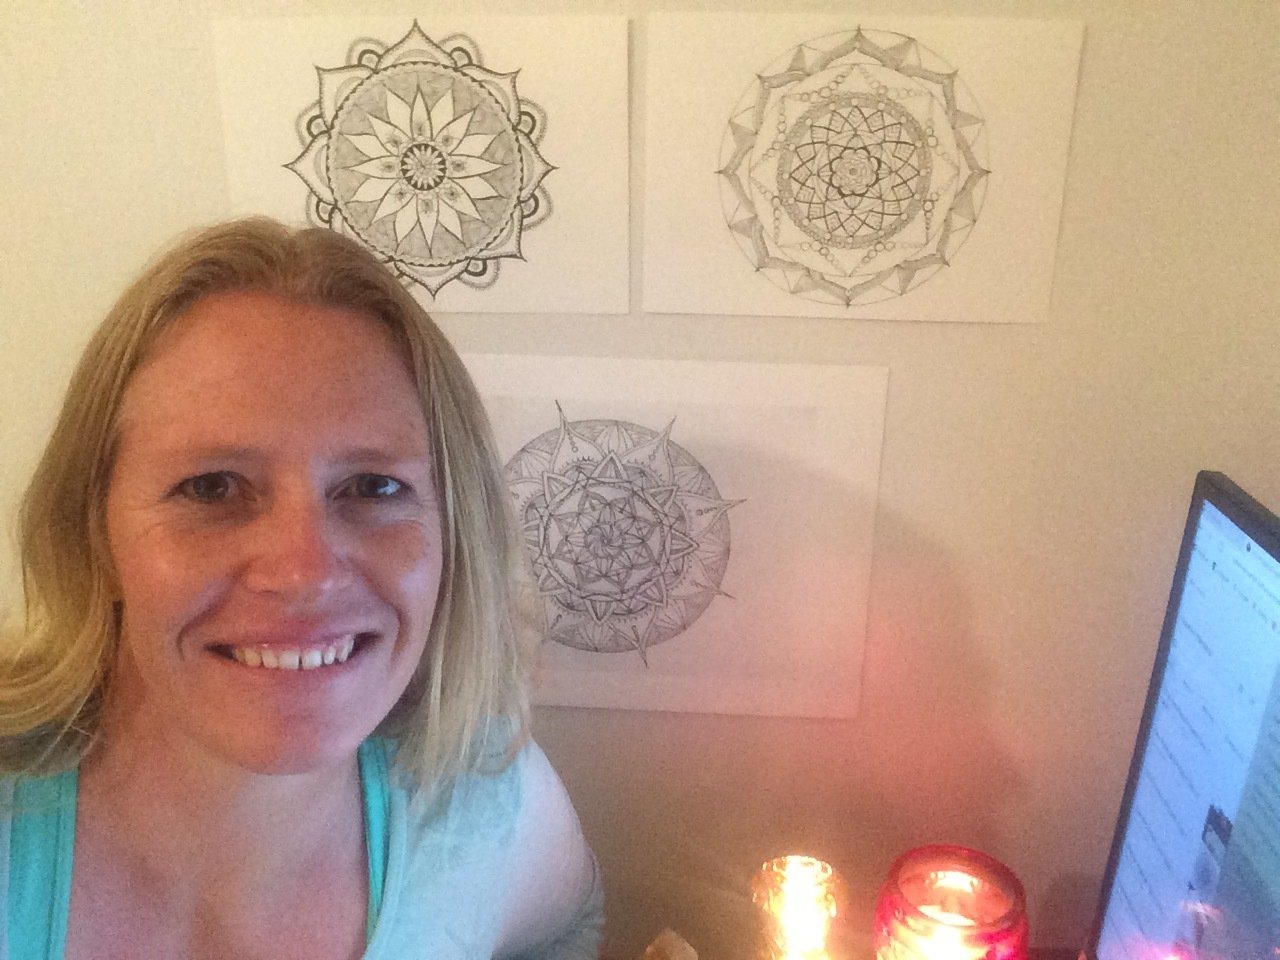 Quick selfie-Saturday with some of my mandalas and some candles lit in gratitude for you all!